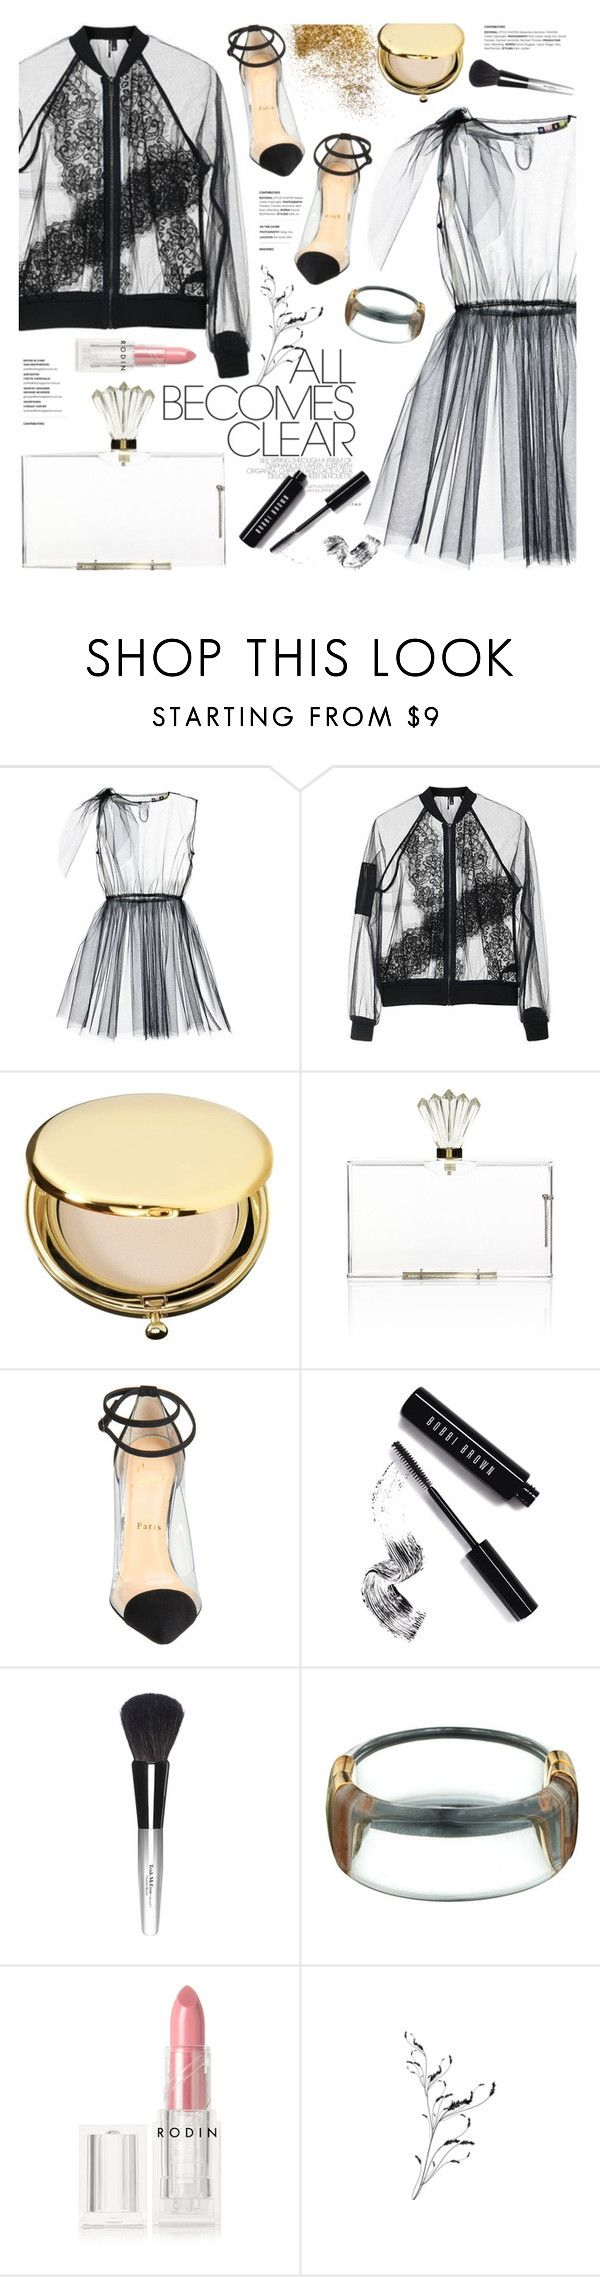 """""""it's all clear now"""" by jesuisunlapin ❤ liked on Polyvore featuring MSGM, Topshop, Estée Lauder, Charlotte Olympia, Christian Louboutin, Bobbi Brown Cosmetics, Trish McEvoy and Rodin"""